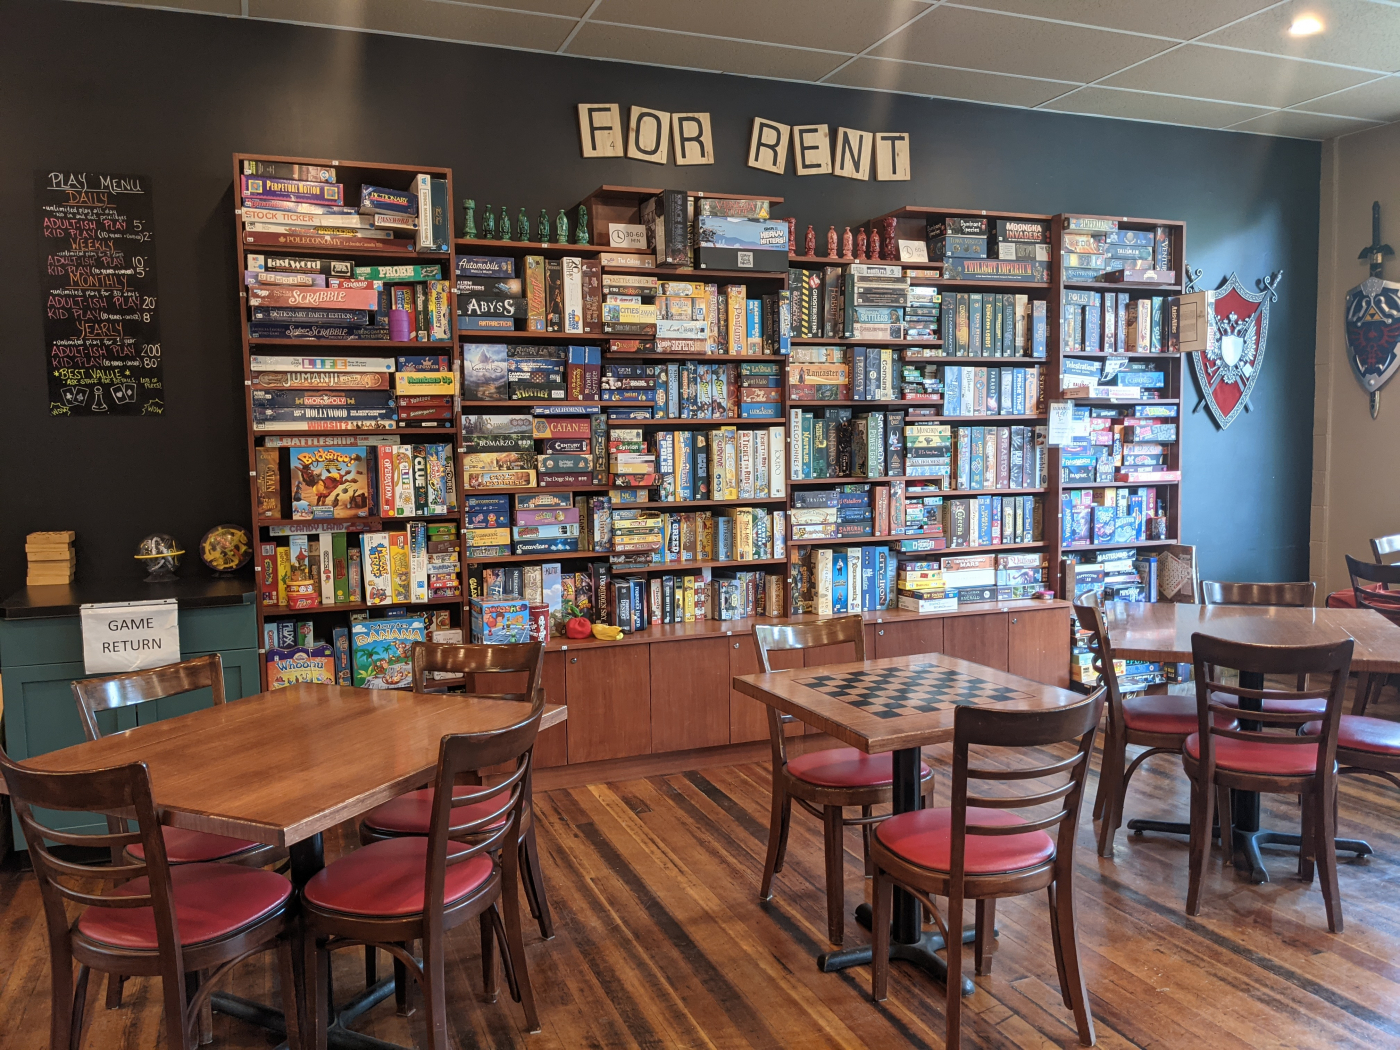 Board Game Cafe for Sale is a business for sale in BC.